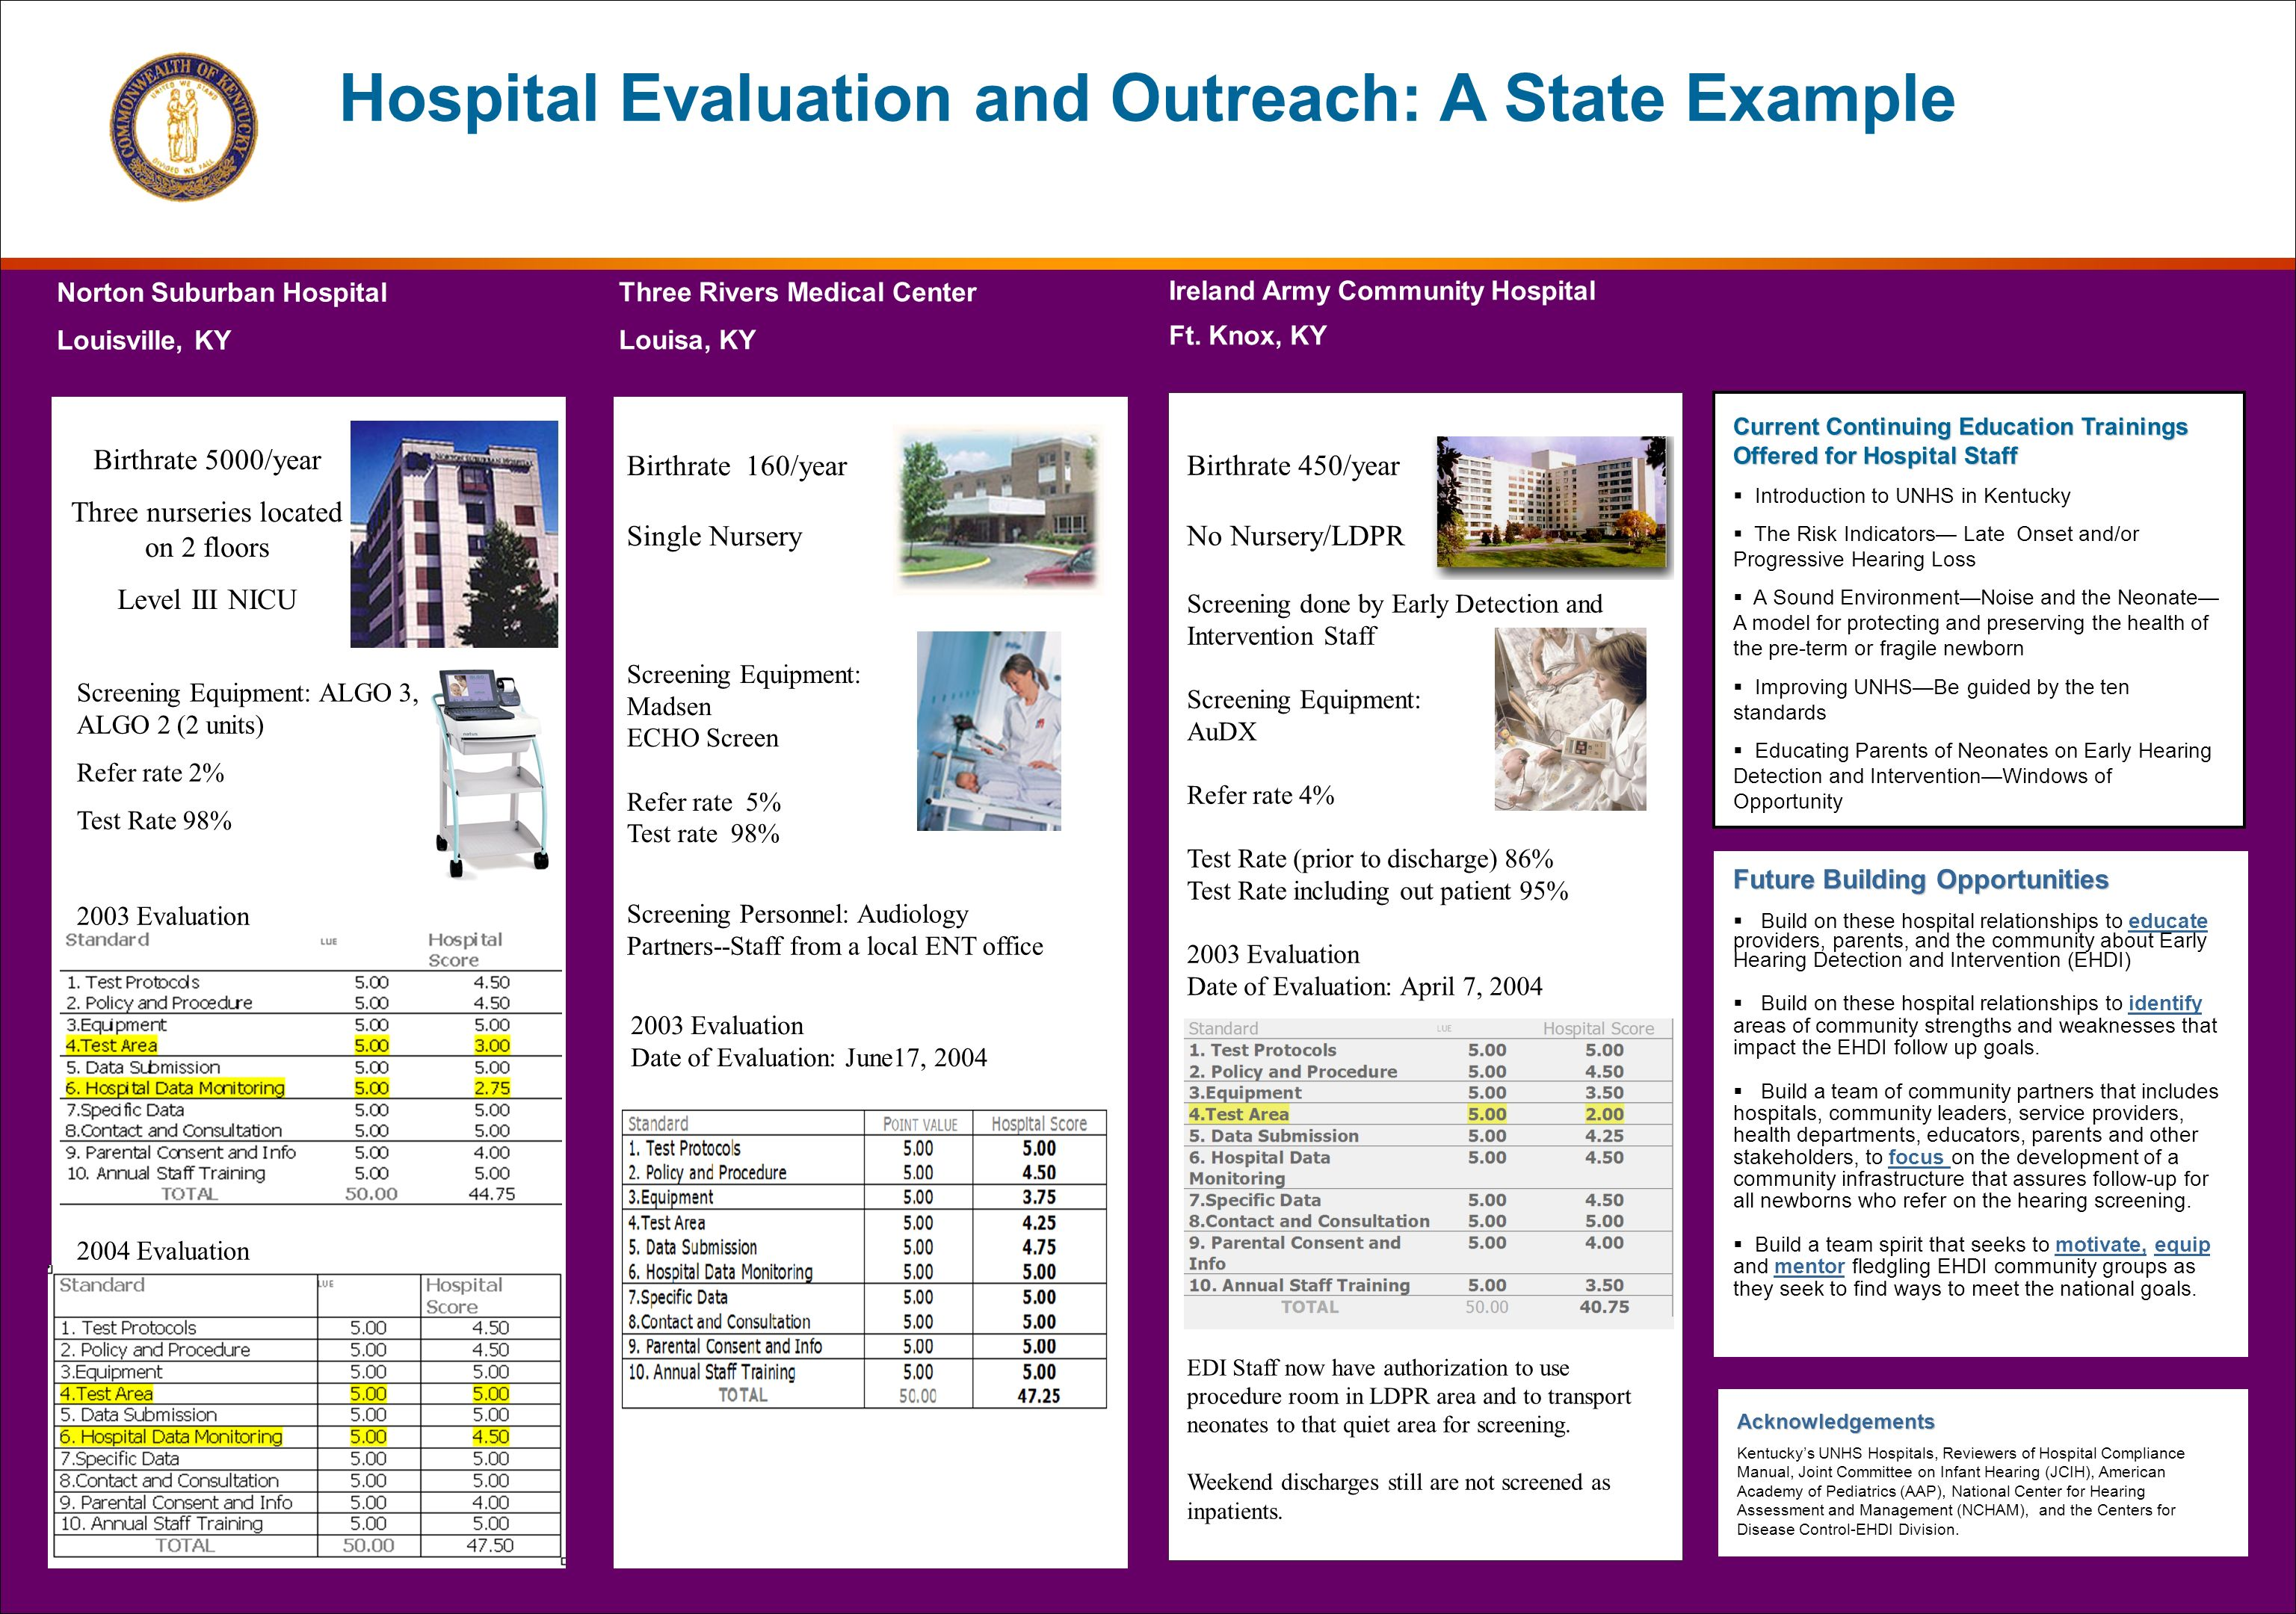 Hospital Evaluation and Outreach: A State ExampleAcknowledgements Kentuckys UNHS Hospitals, Reviewers of Hospital Compliance Manual, Joint Committee on Infant Hearing (JCIH), American Academy of Pediatrics (AAP), National Center for Hearing Assessment and Management (NCHAM), and the Centers for Disease Control-EHDI Division.